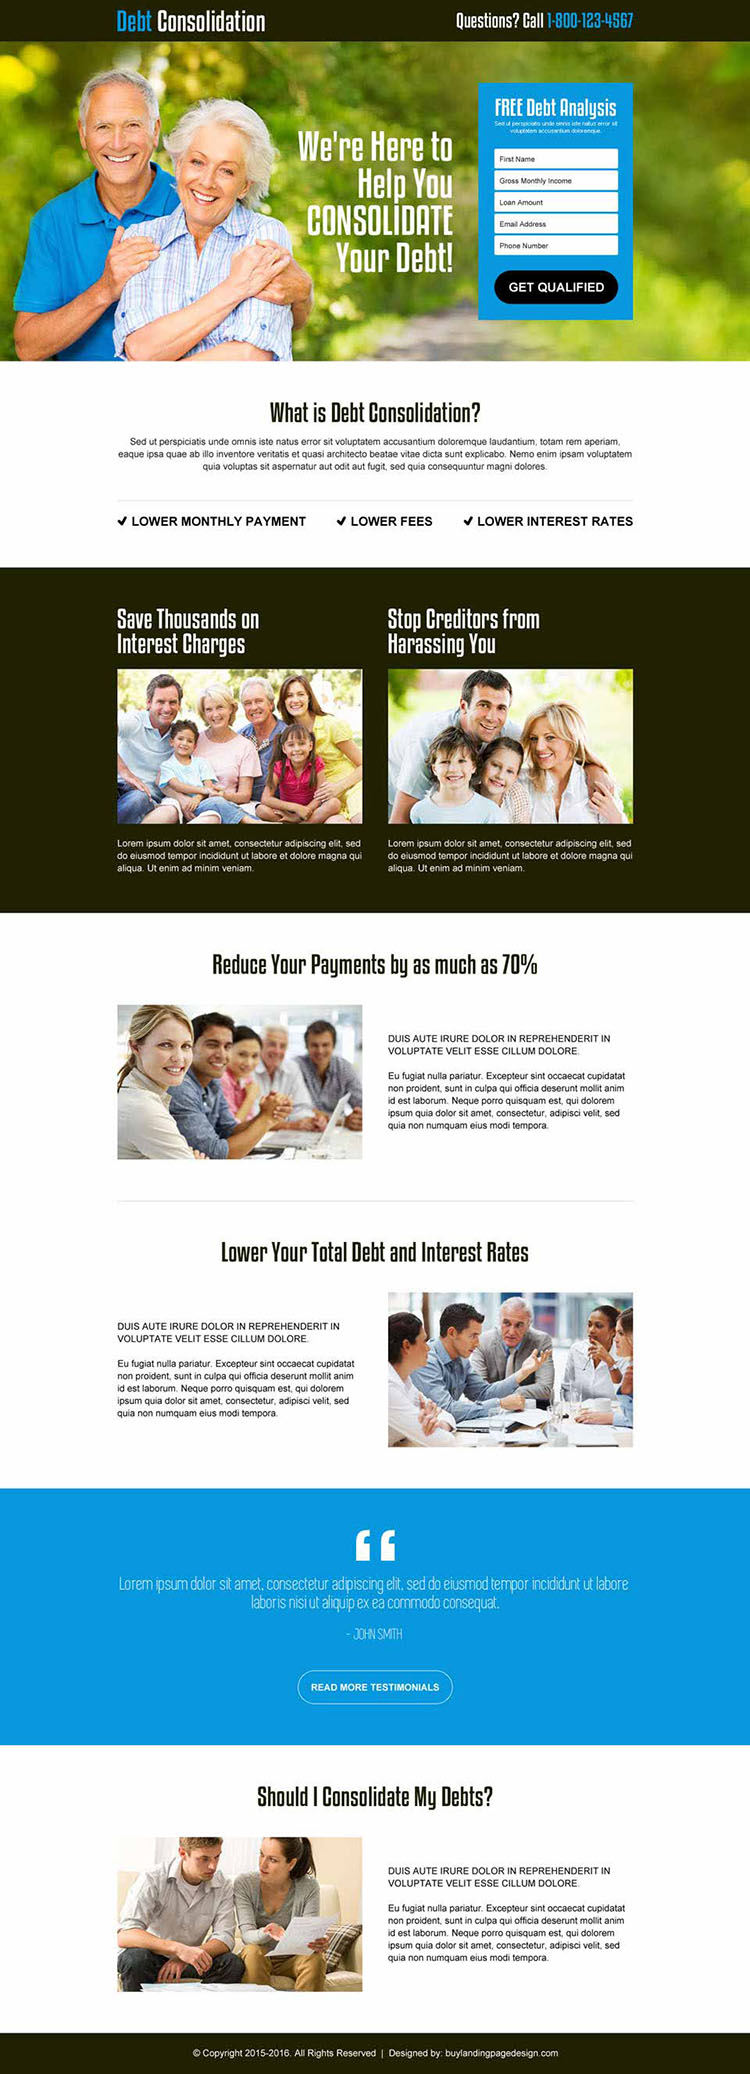 free debt analysis lead gen responsive landing page design template